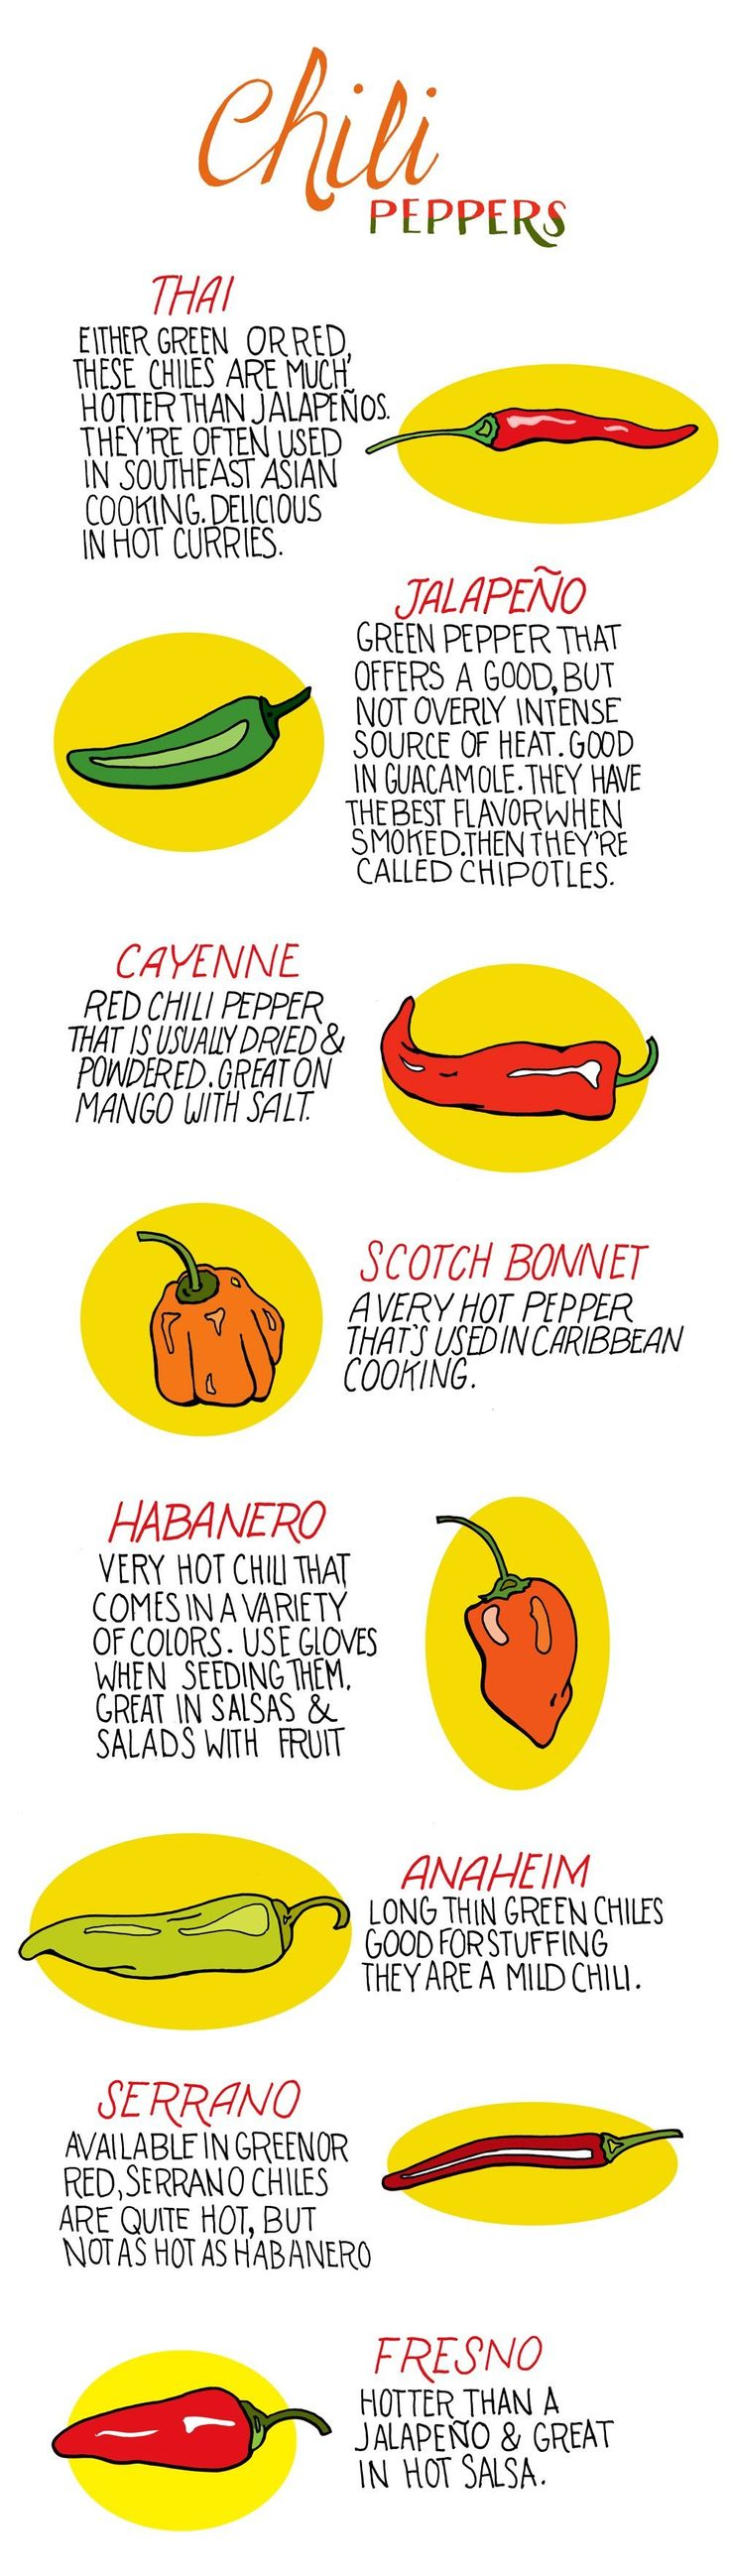 Chili Peppers #Infographic